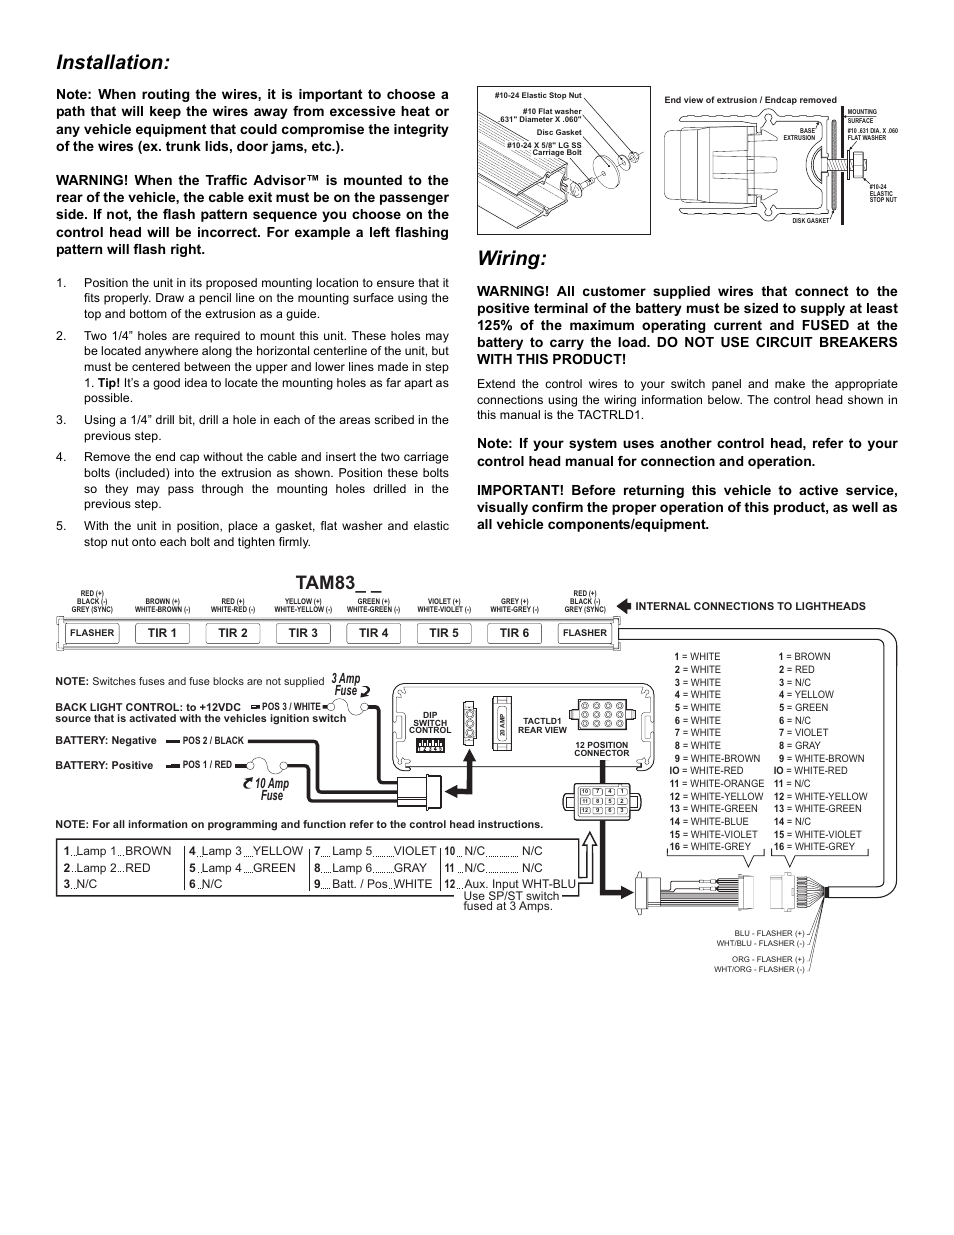 Whelen Traffic Advisor Wiring Diagram - Diagram Design Sources cable-tooth  - cable-tooth.lesmalinspres.fr | Whelen Traffic Advisor Wiring Diagram |  | diagram database